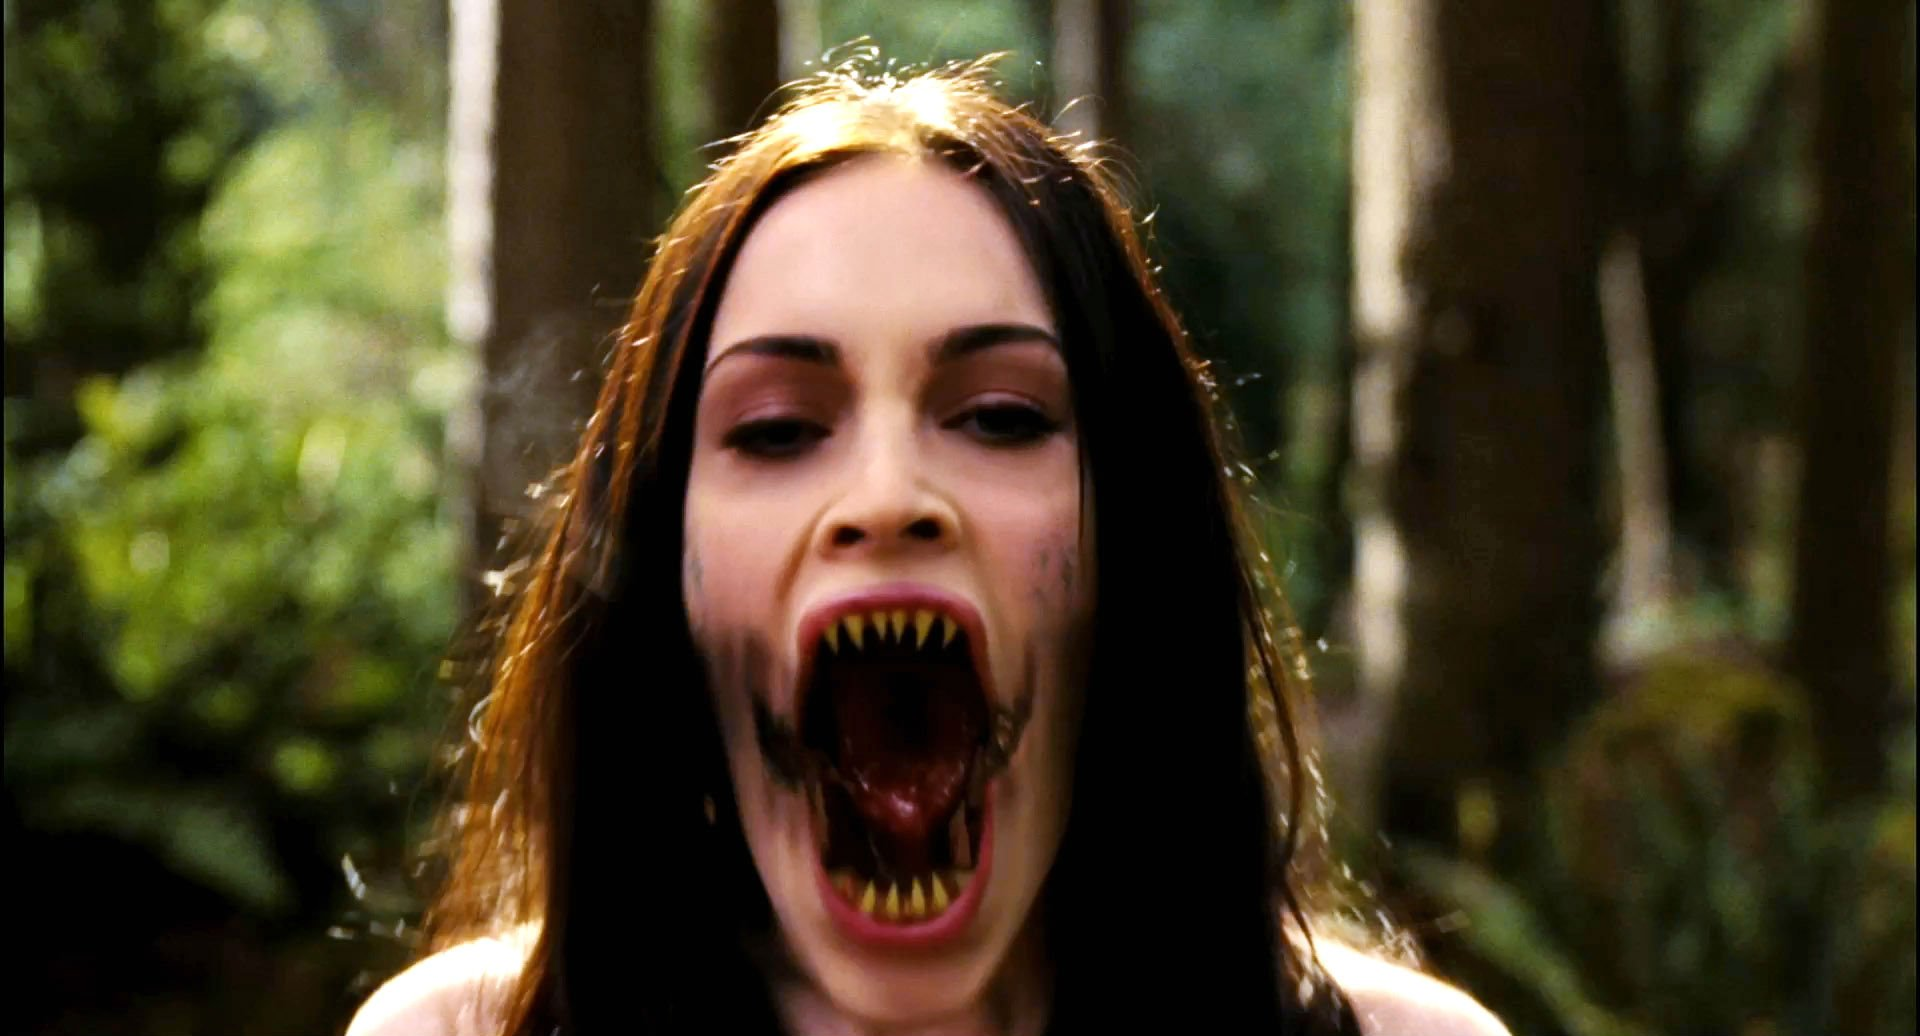 Jennifers body - Changing the Face of Horror - An International Women's Day Special Report